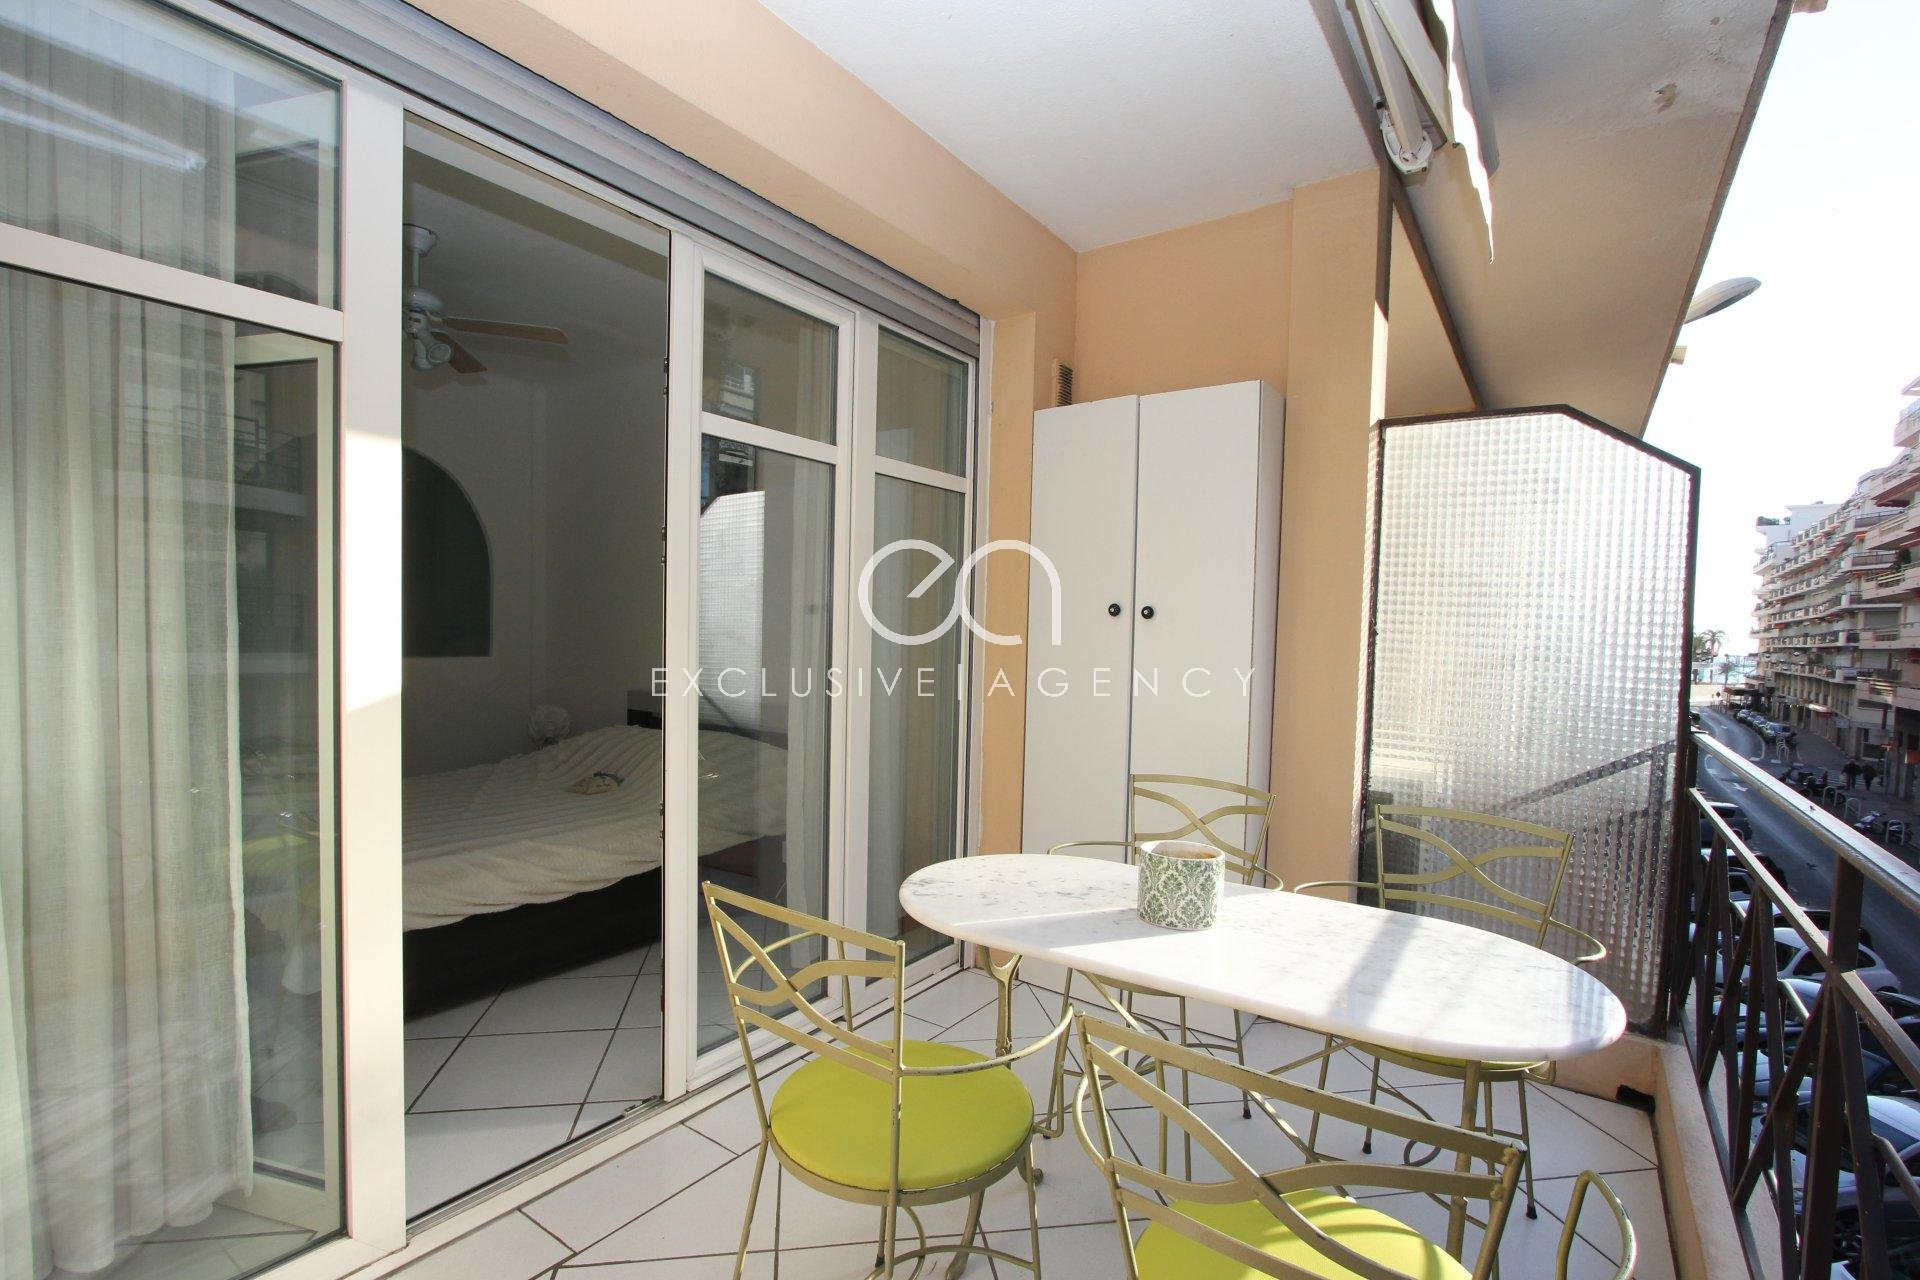 For sale Cannes 1-bedroom apartment of 40m² with terrace of 8,5m².